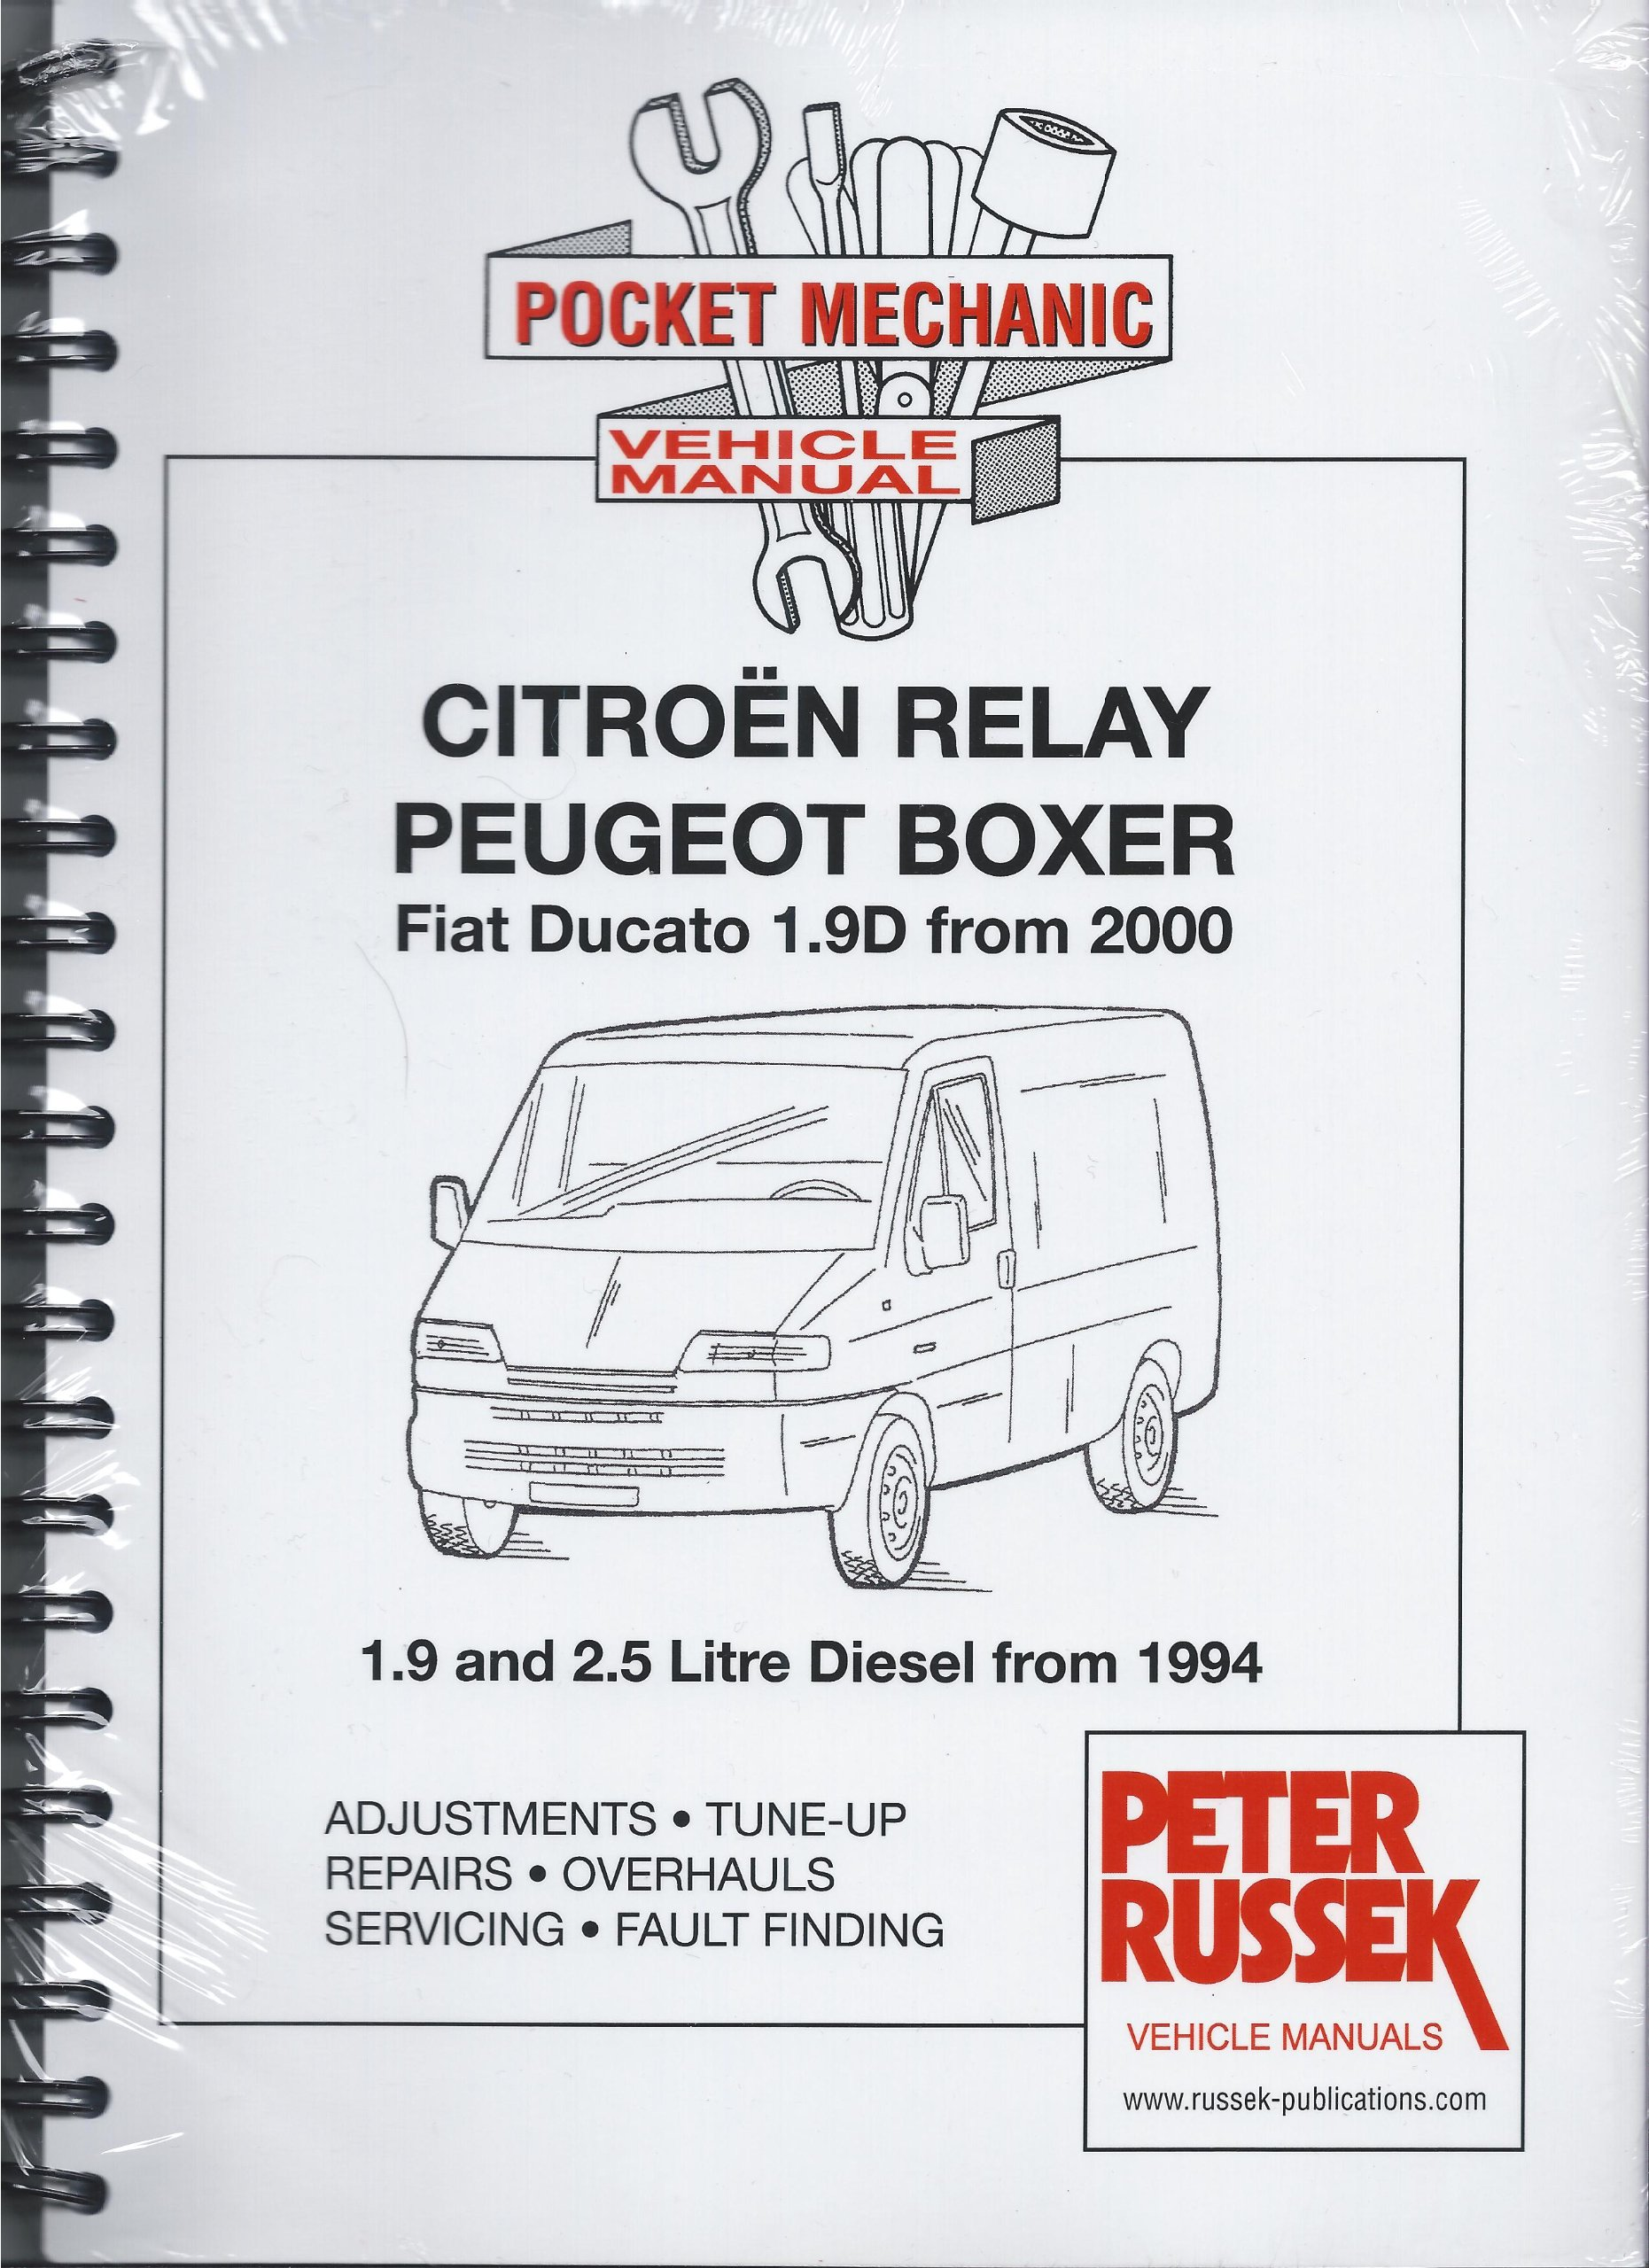 citroen relay peugeot boxer 1 9 2 5 diesel from 94 fiat ducato rh amazon co uk